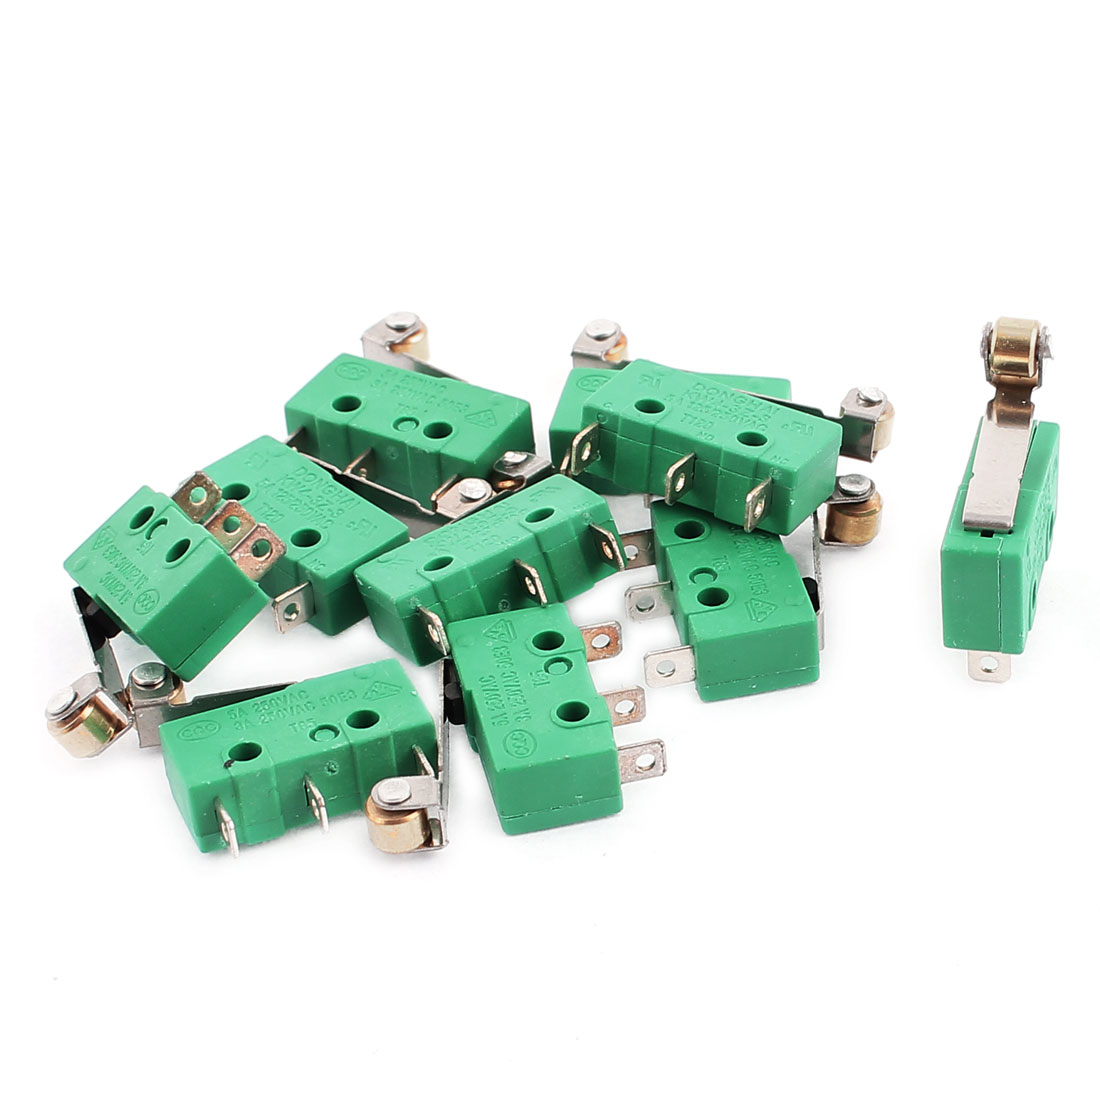 10 Pcs 5A AC250V/125V Roller Lever Arm SPDT 3 Terminals Momentary Micro Switch